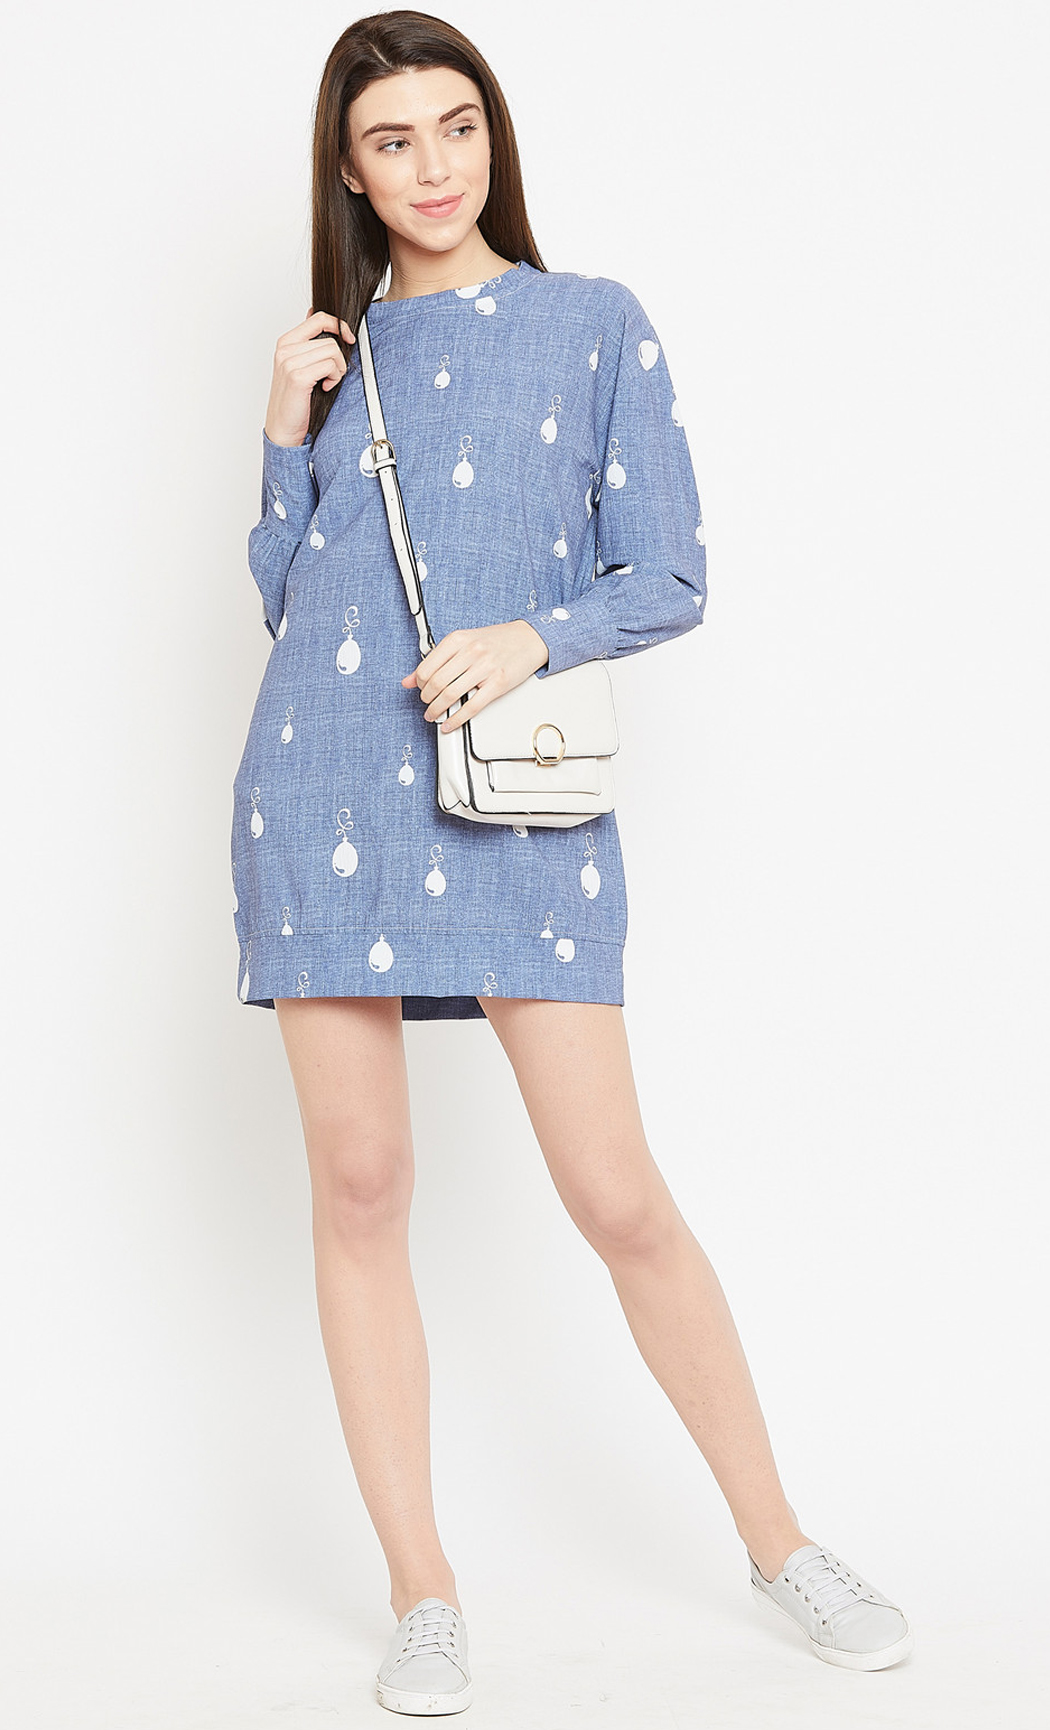 Dusty Blue Balloonie Printed Sweatshirt Dress. Buy Online